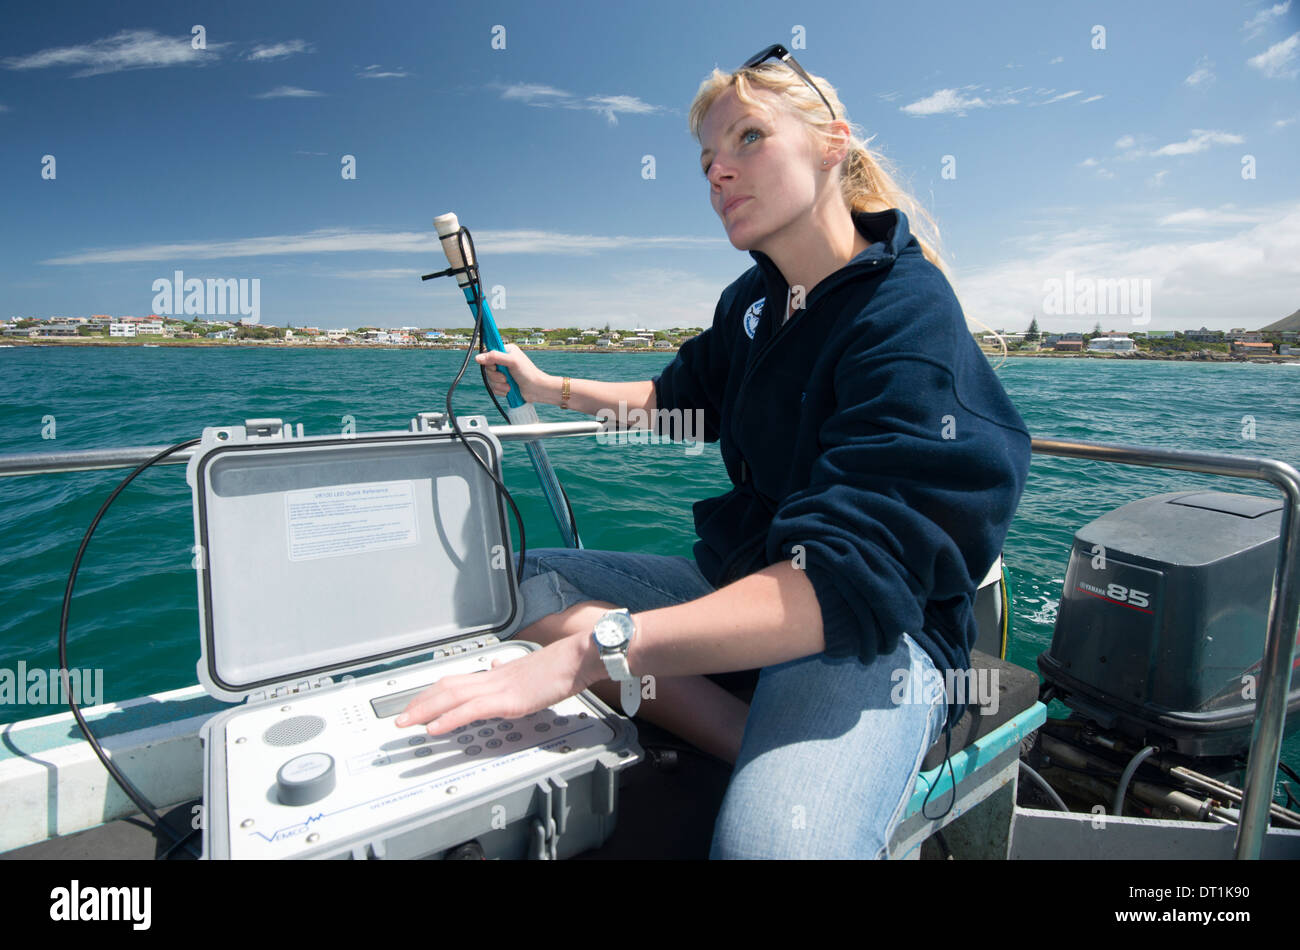 Scientist uses hydrophone to track tagged great white shark behaviour, Gaansbaai, Western Cape, South Africa Stock Photo